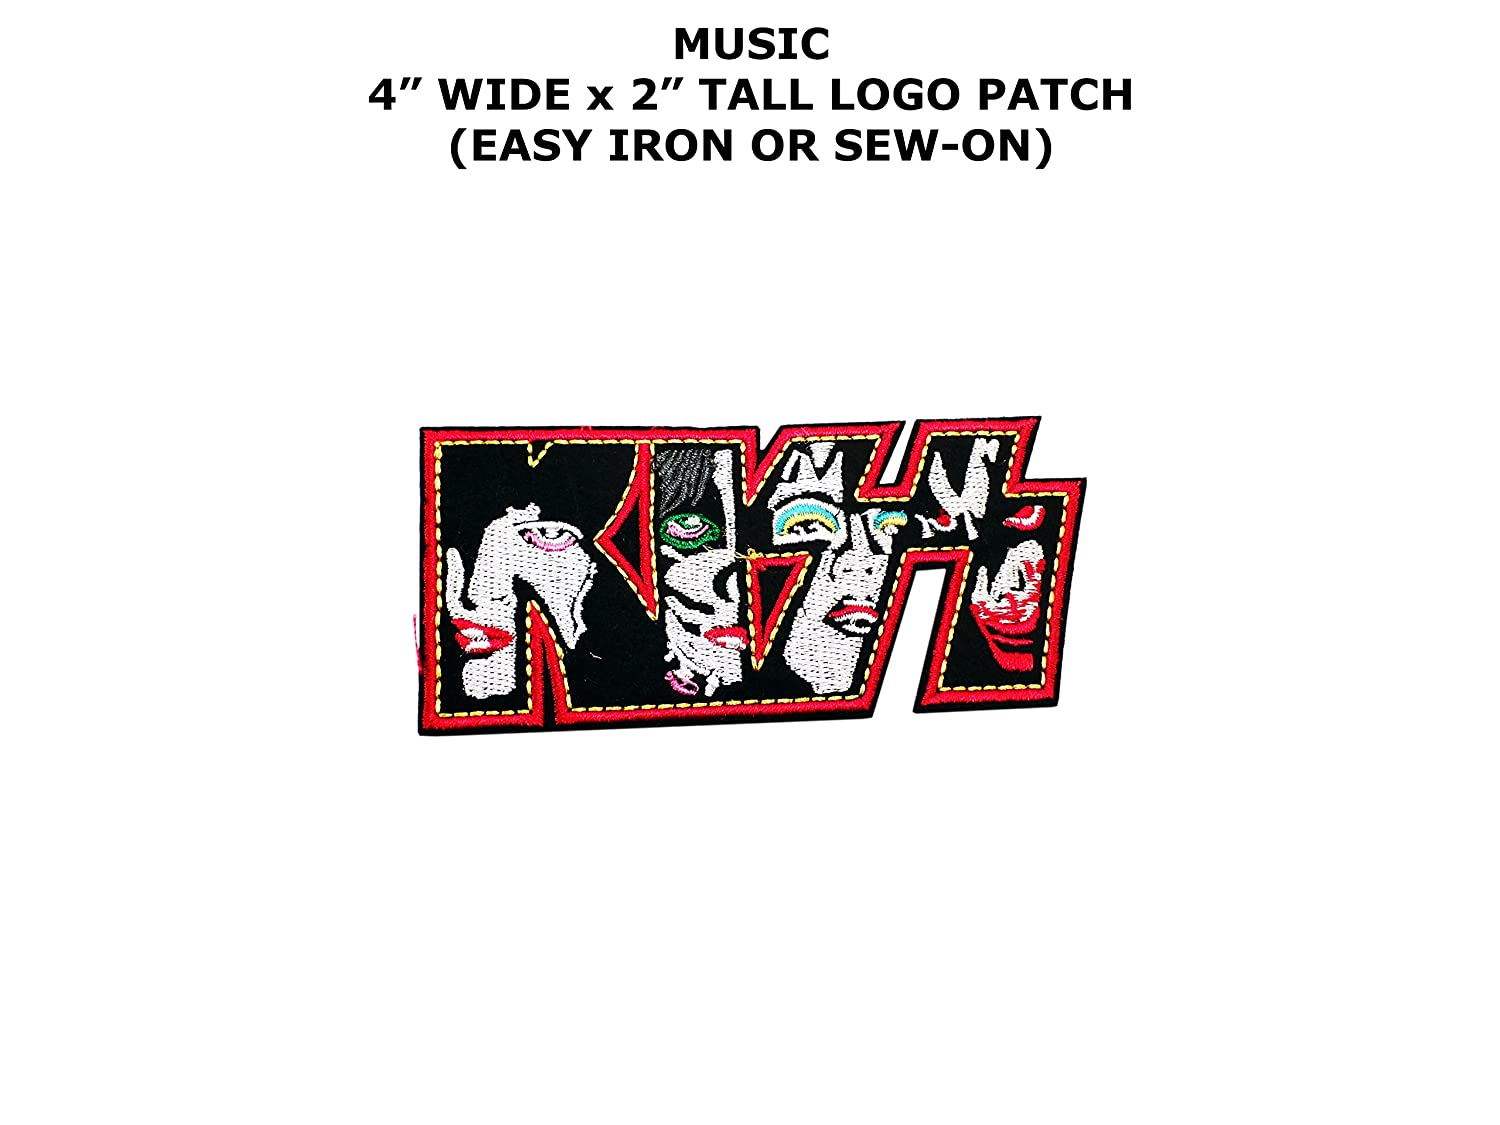 Kiss Faces Rock Band Singer Embroidered Iron/Sew-on Music Theme Logo Patch/Applique